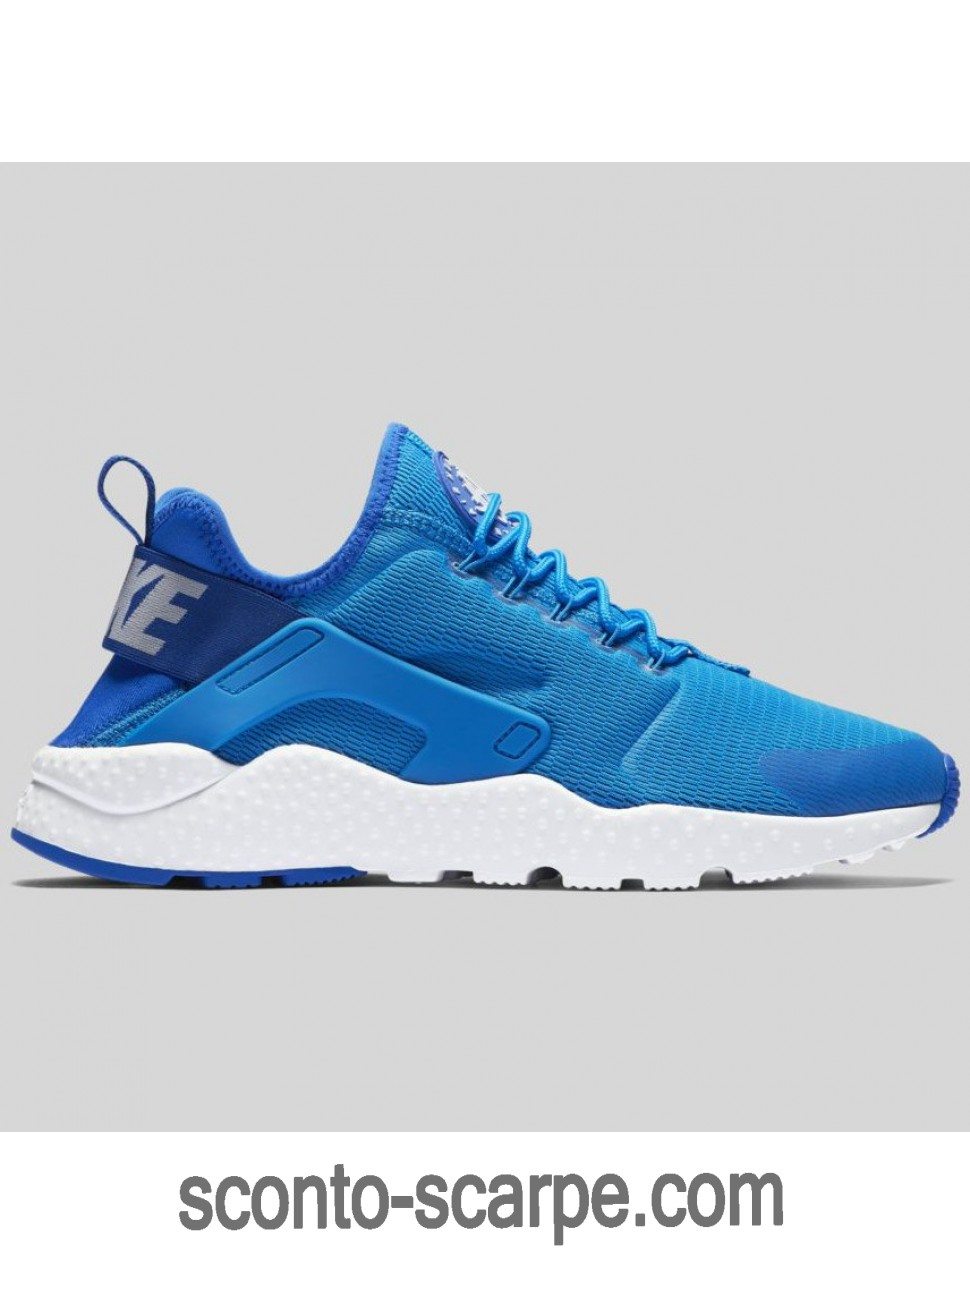 Nike Air Huarache Run Ultra Photo Blu/Bianche 819151-400 Su Discount